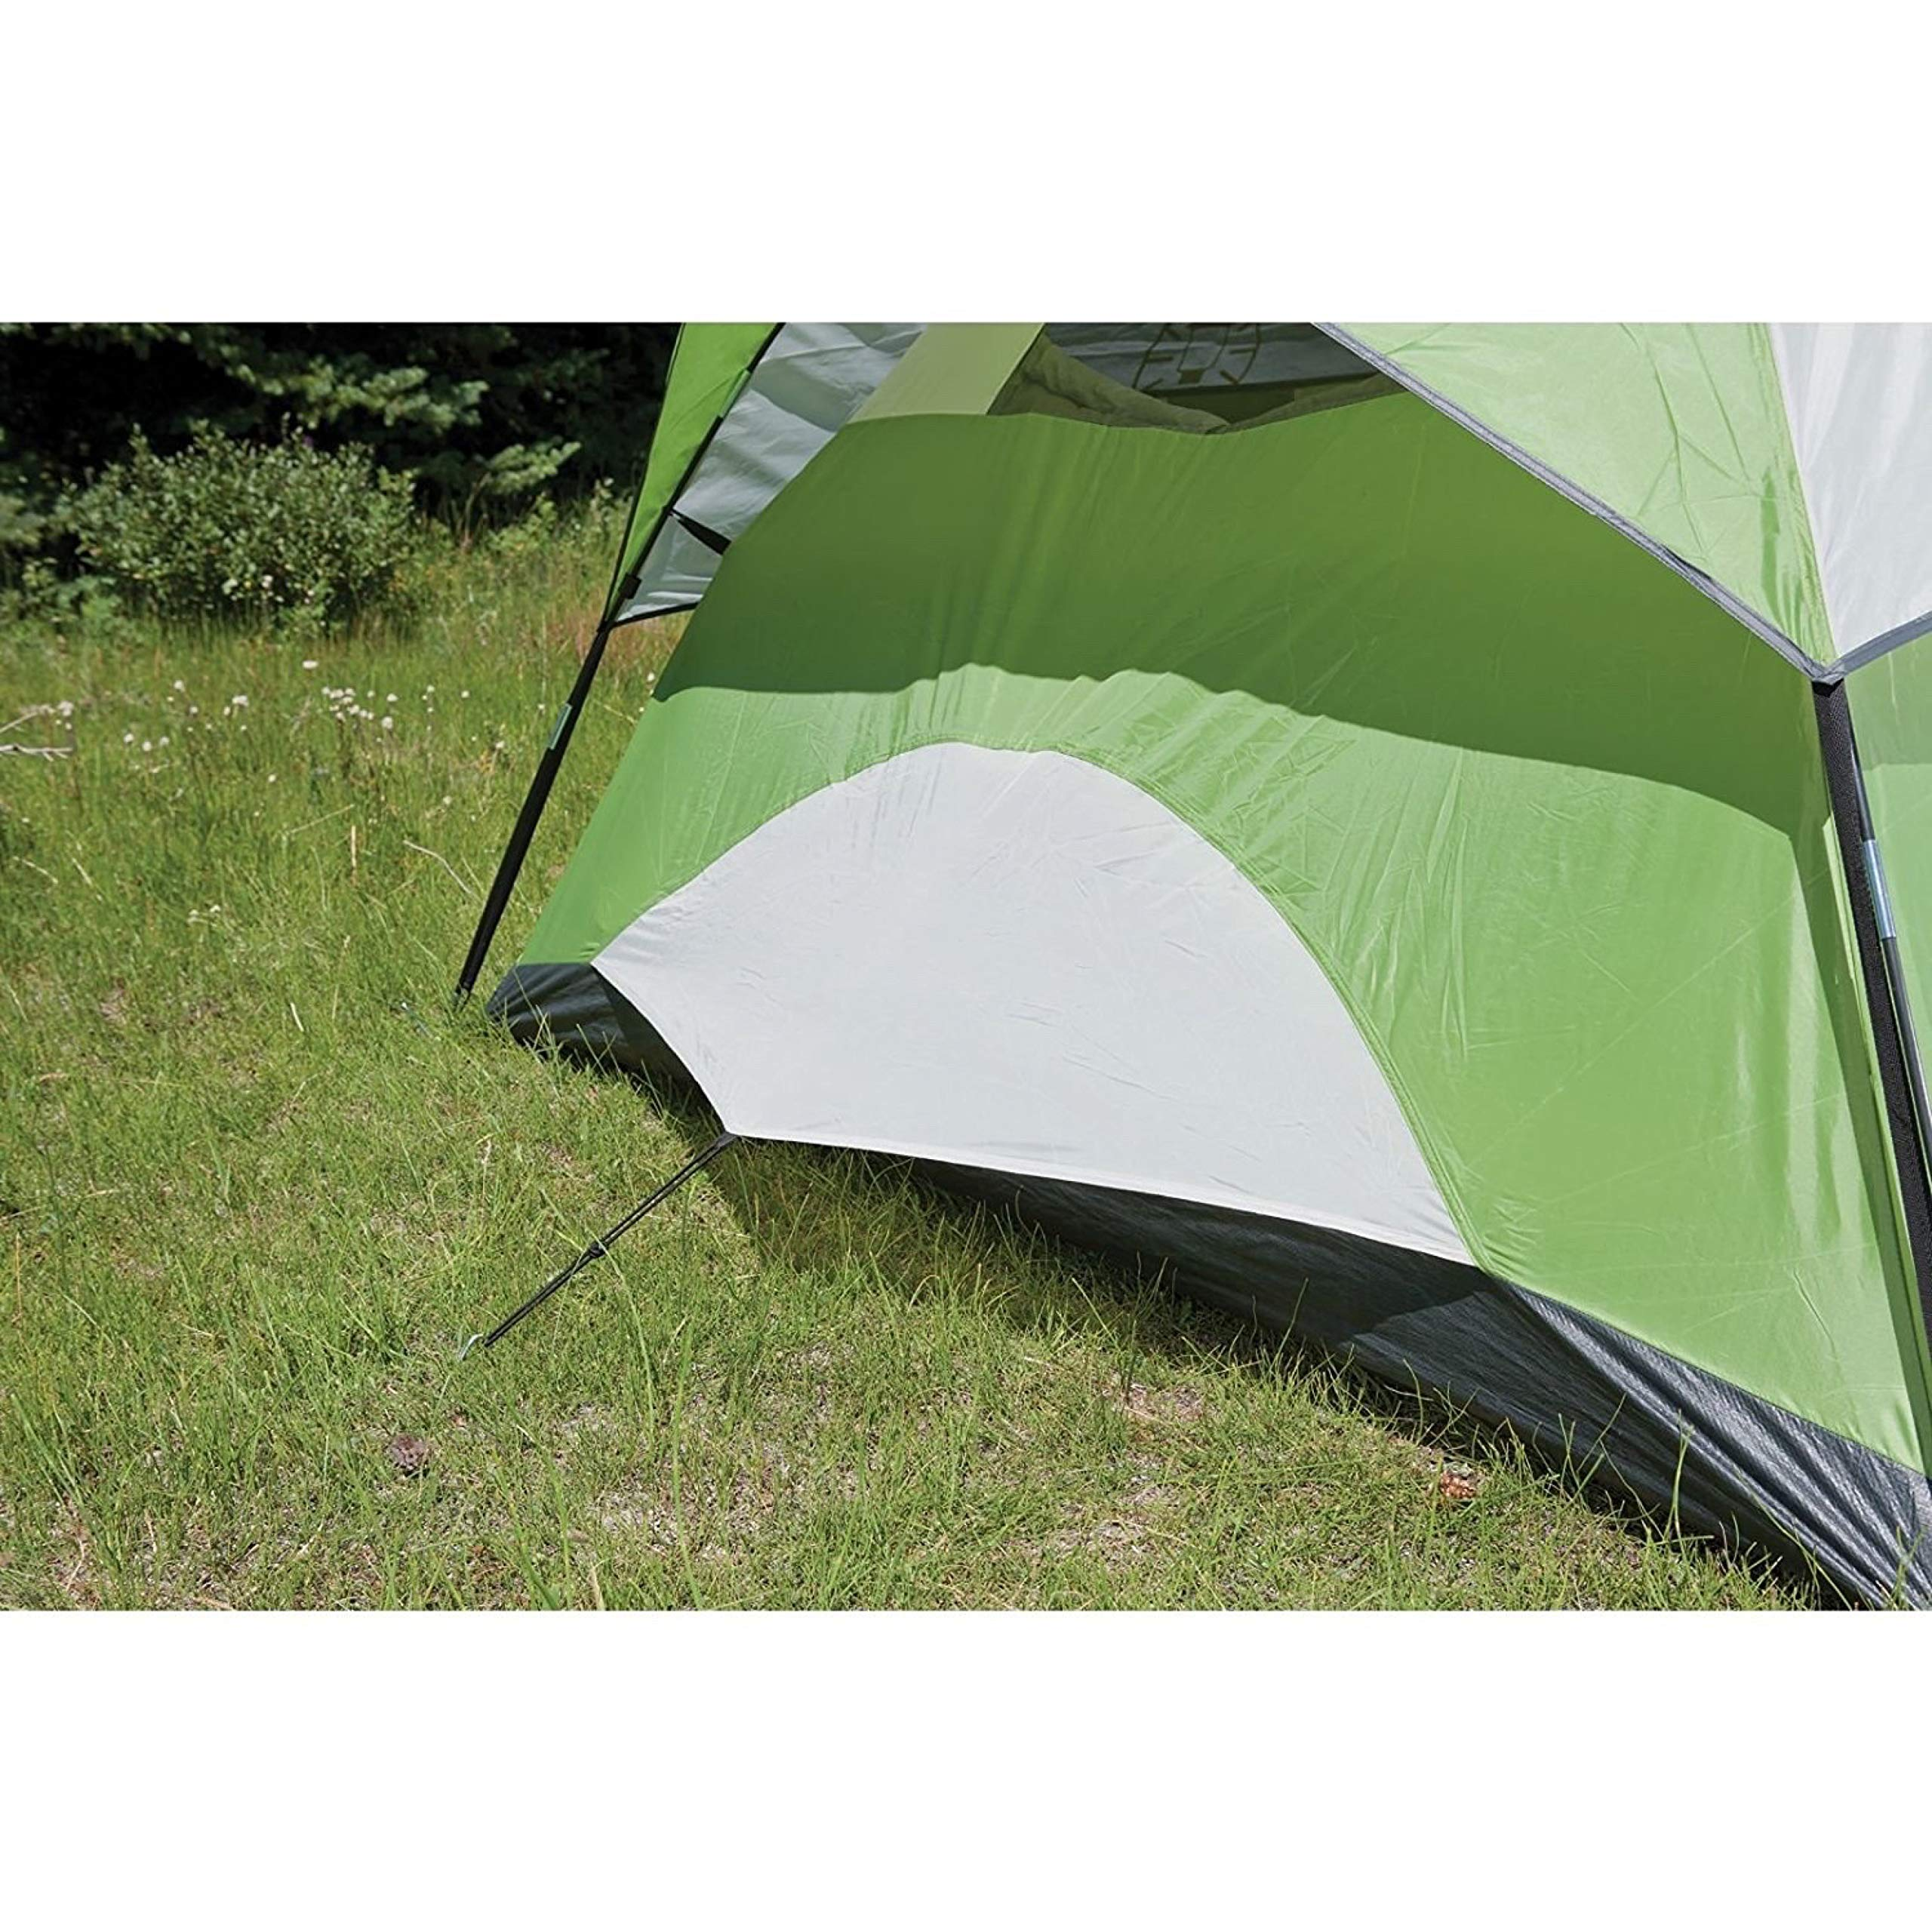 Coleman 2 Person Dome Tent For Camping Sundome Tent With